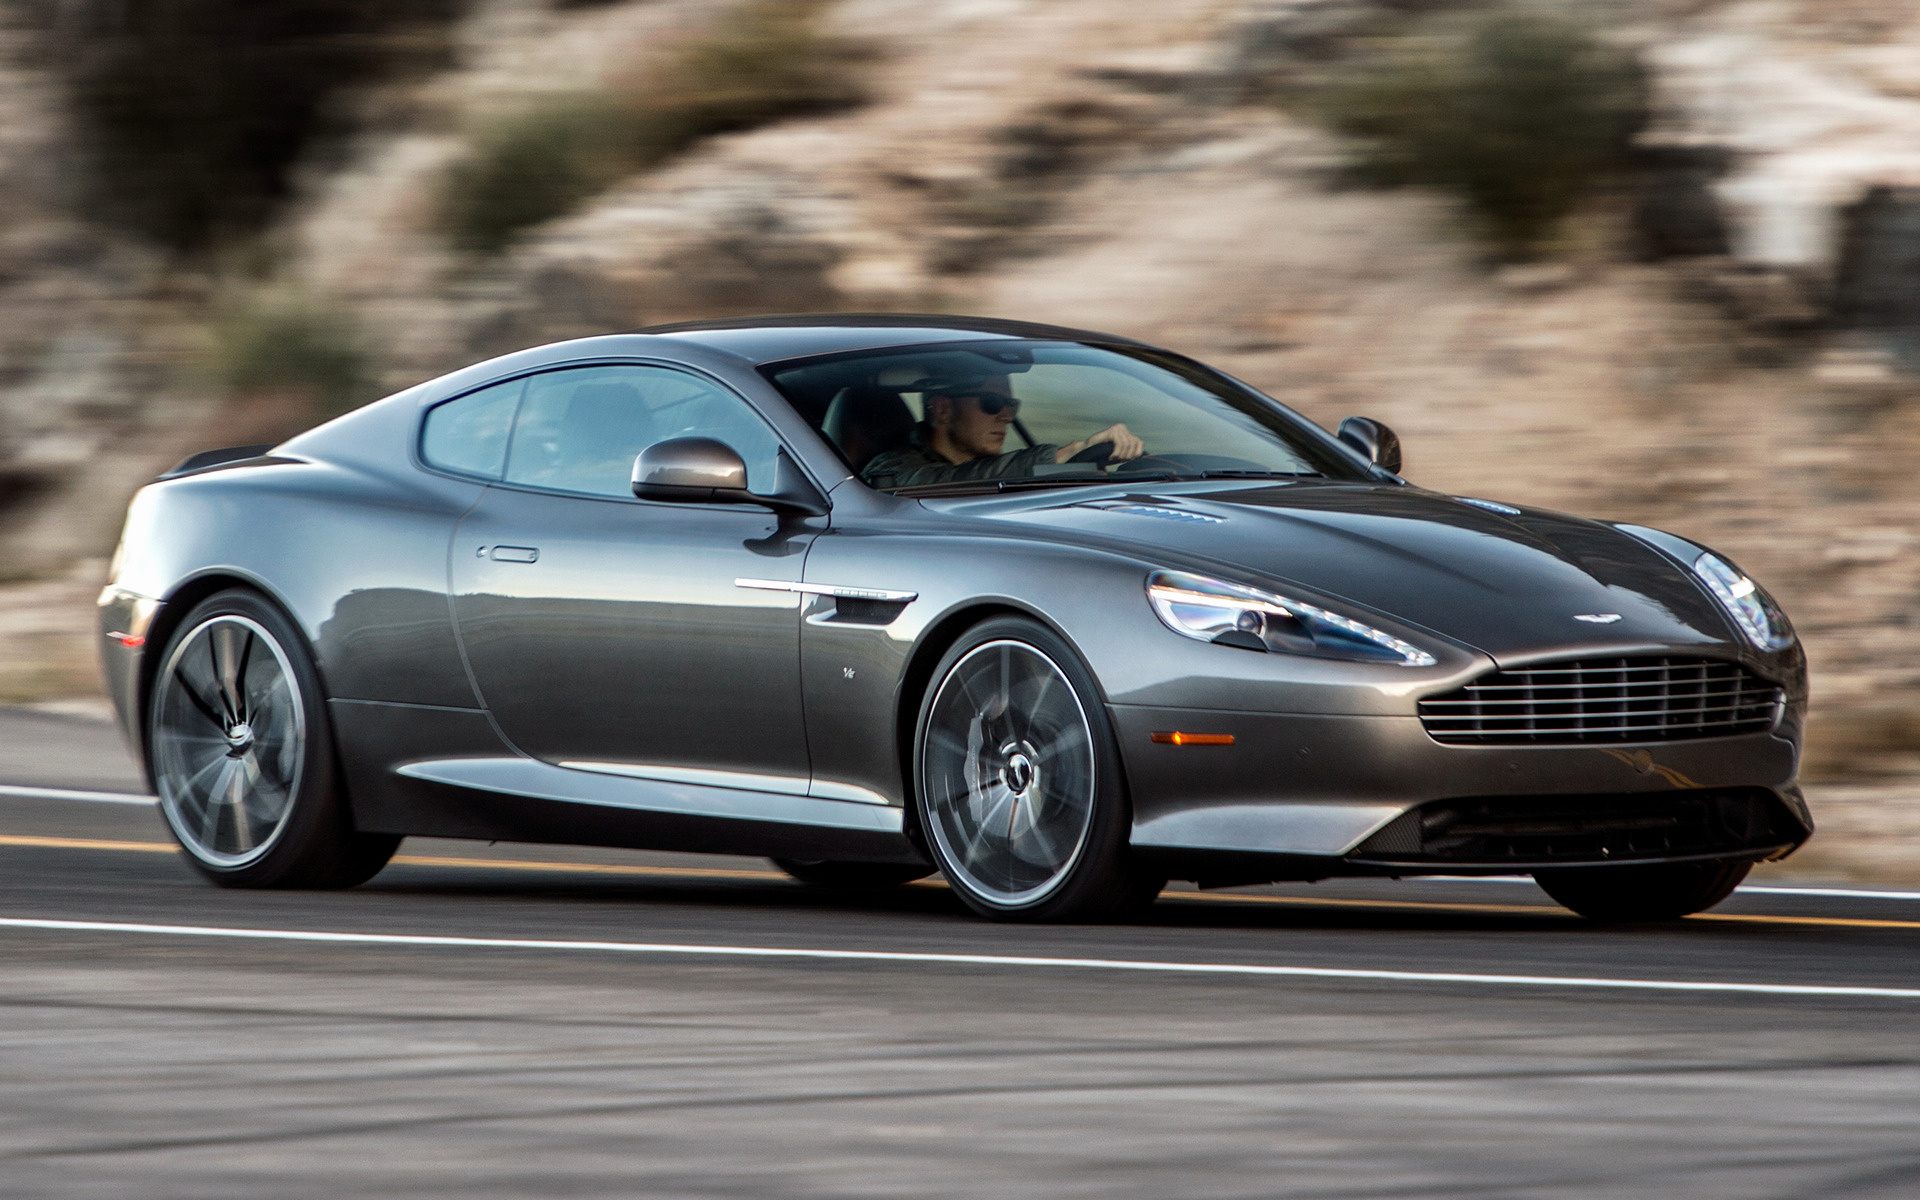 2016 Aston Martin Db9 Gt Us Wallpapers And Hd Images